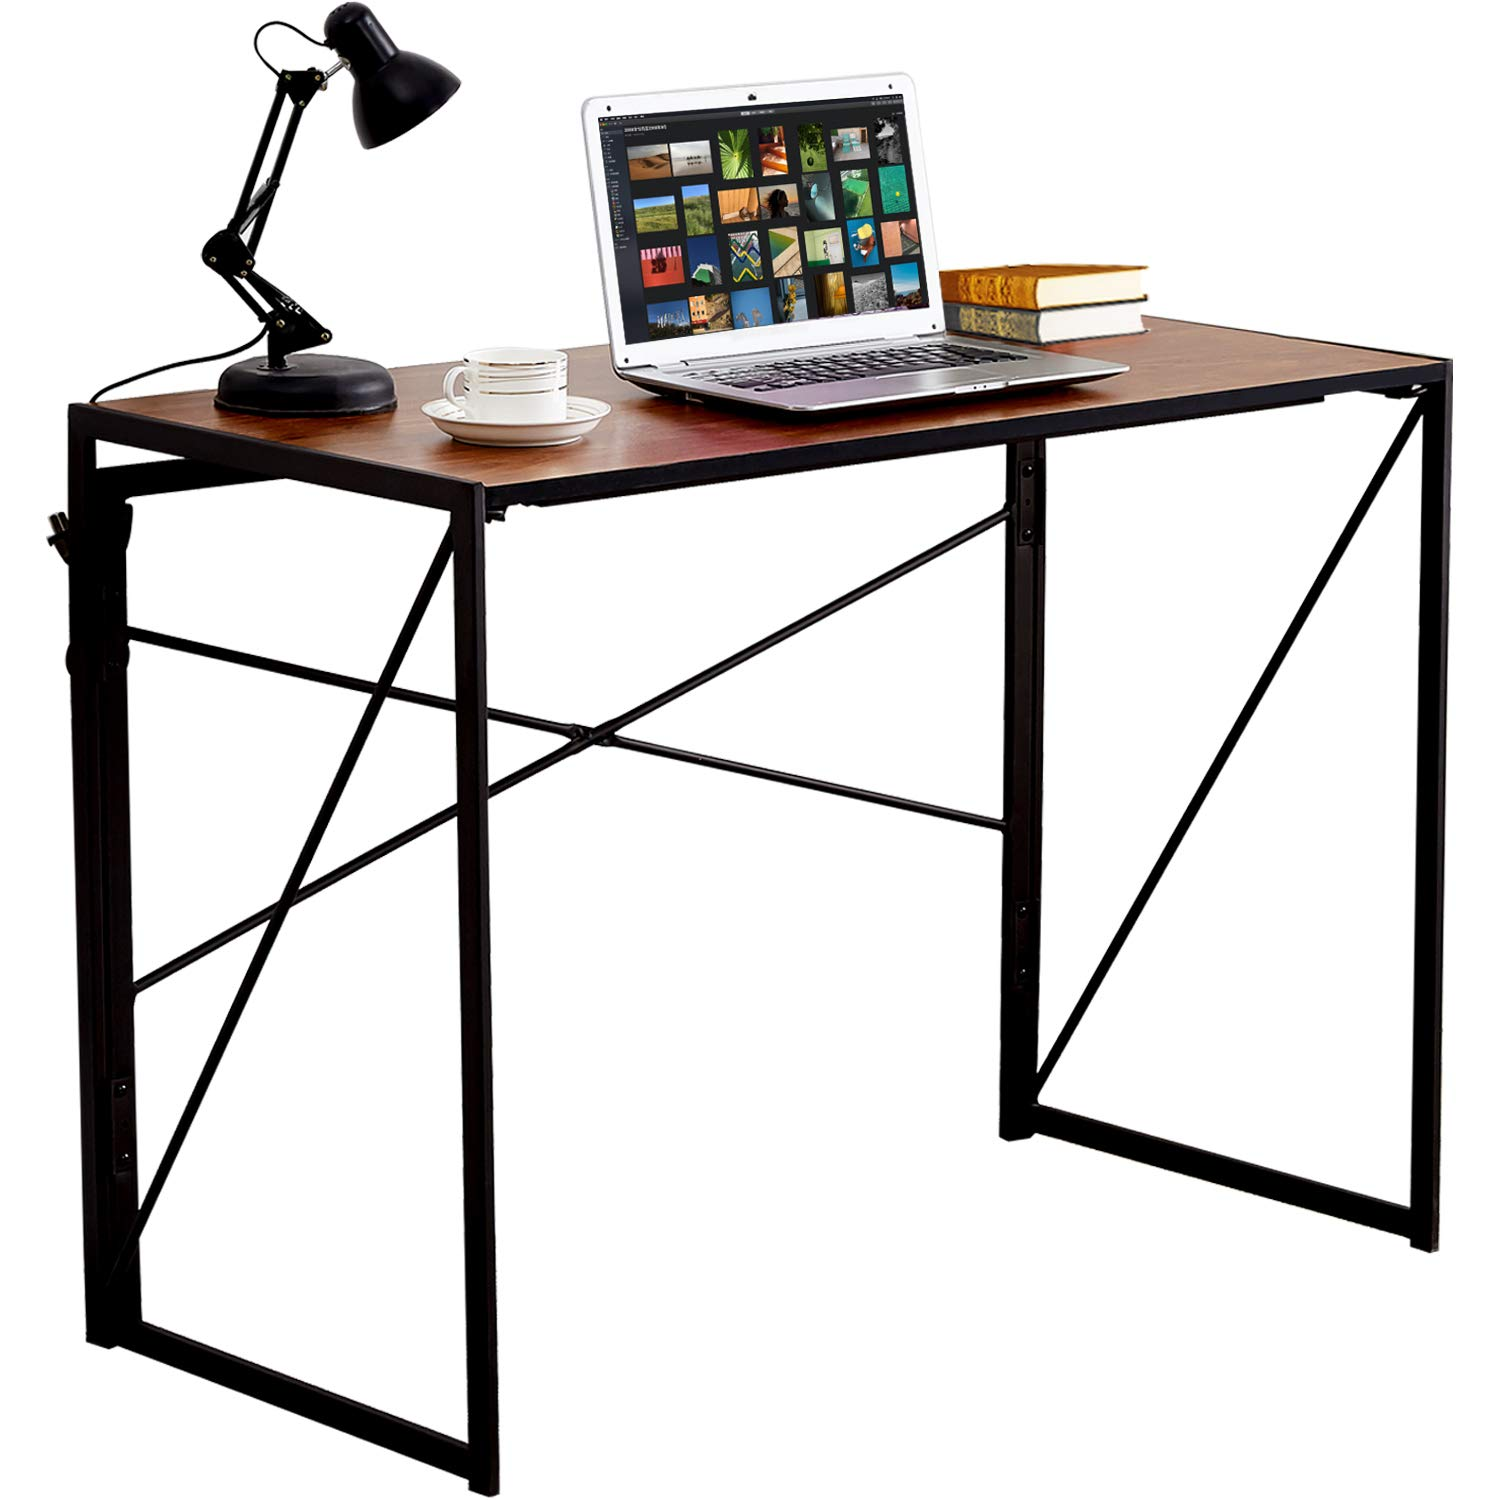 VECELO Writing Computer Folding Desk/Sturdy Steel Laptop Table for Home Office Work by VECELO (Image #1)